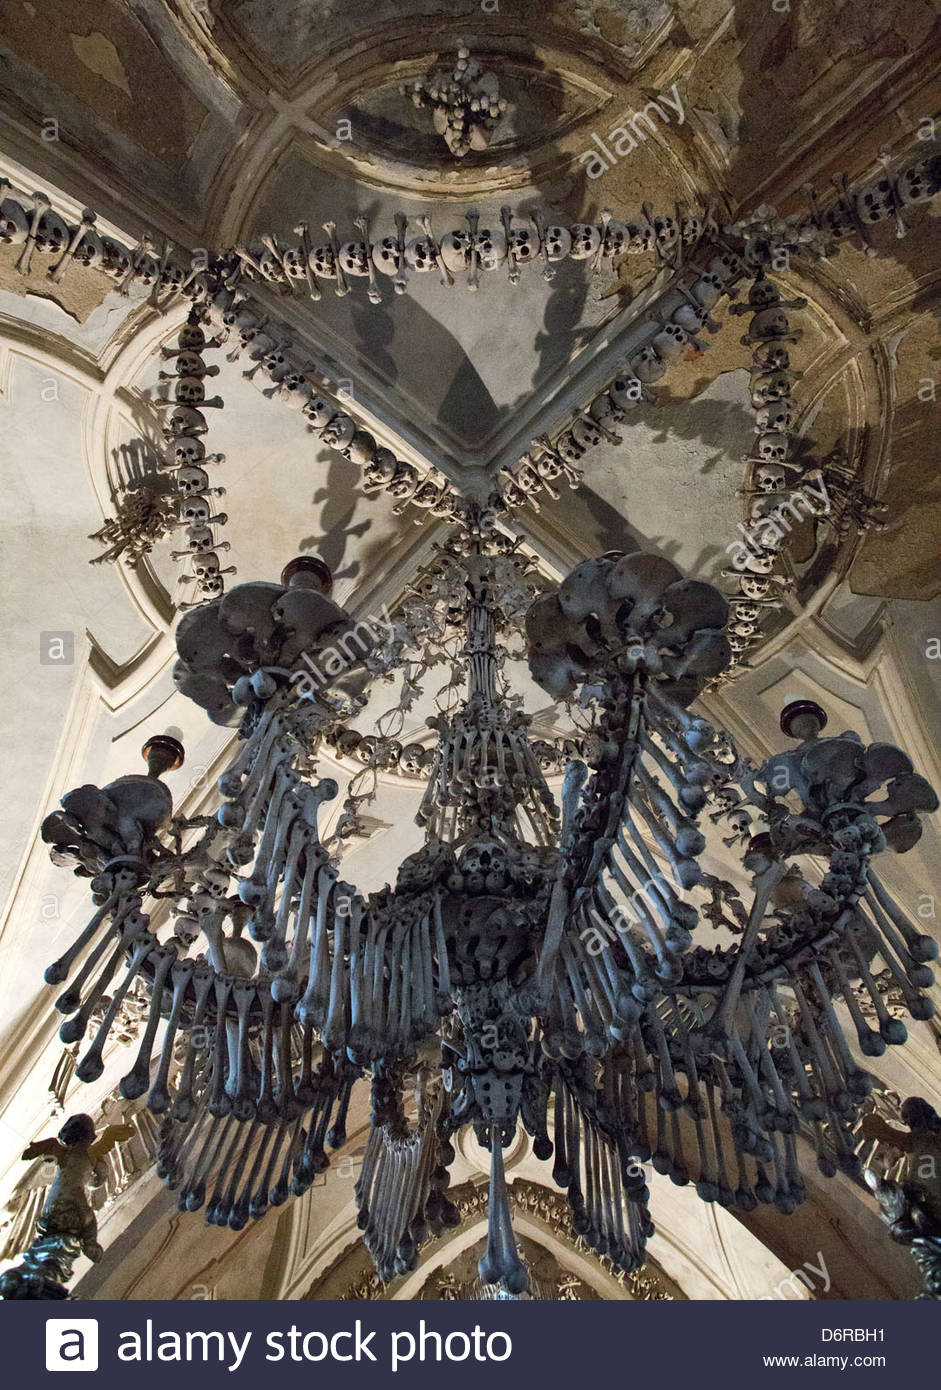 Czech republic kutna hora bone church bone chandelier stock photo czech republic kutna hora bone church bone chandelier aloadofball Image collections